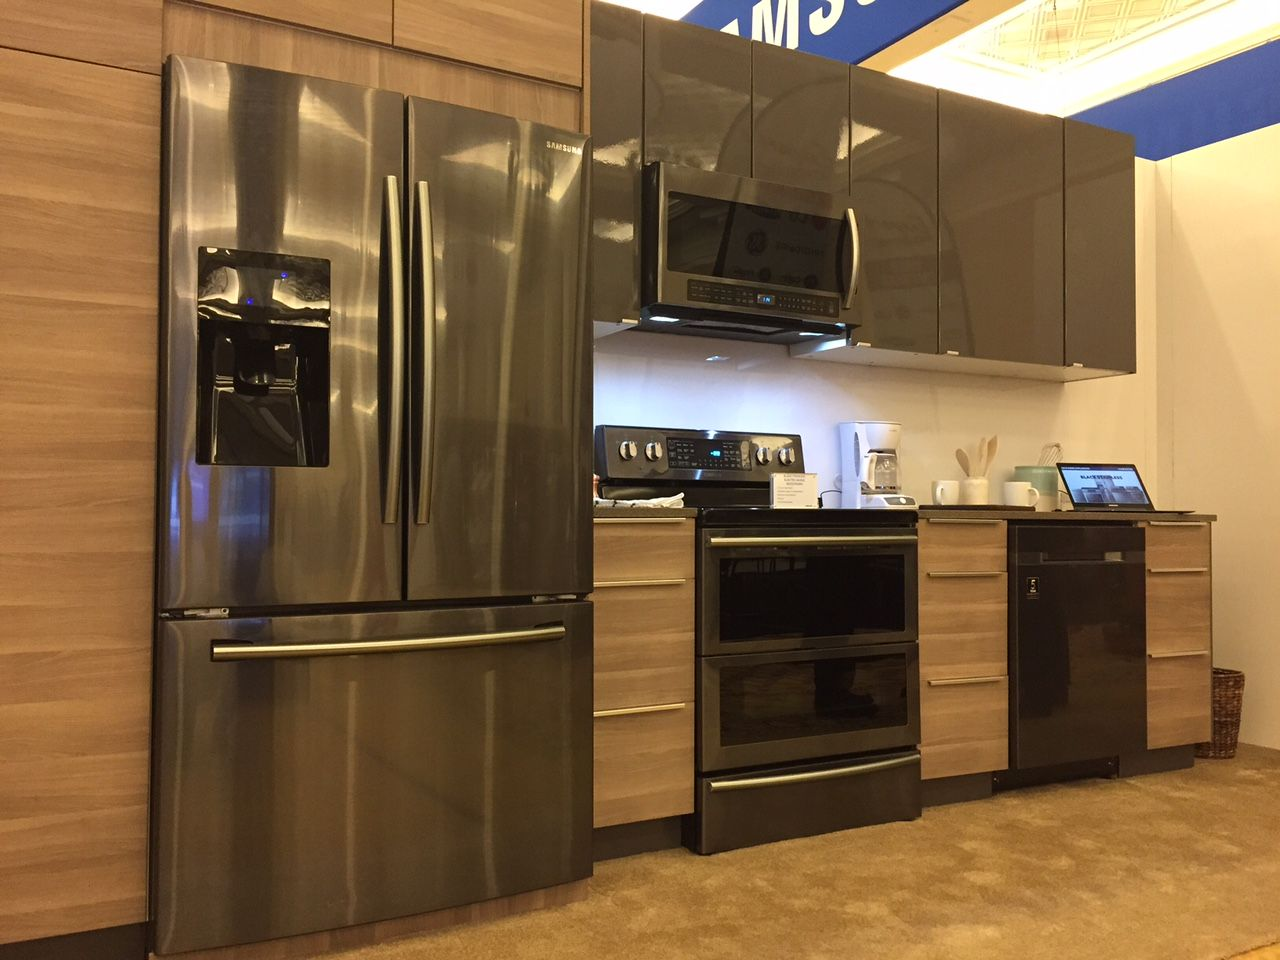 Black Stainless Steel Kitchen Liances Durable And Less Smudging